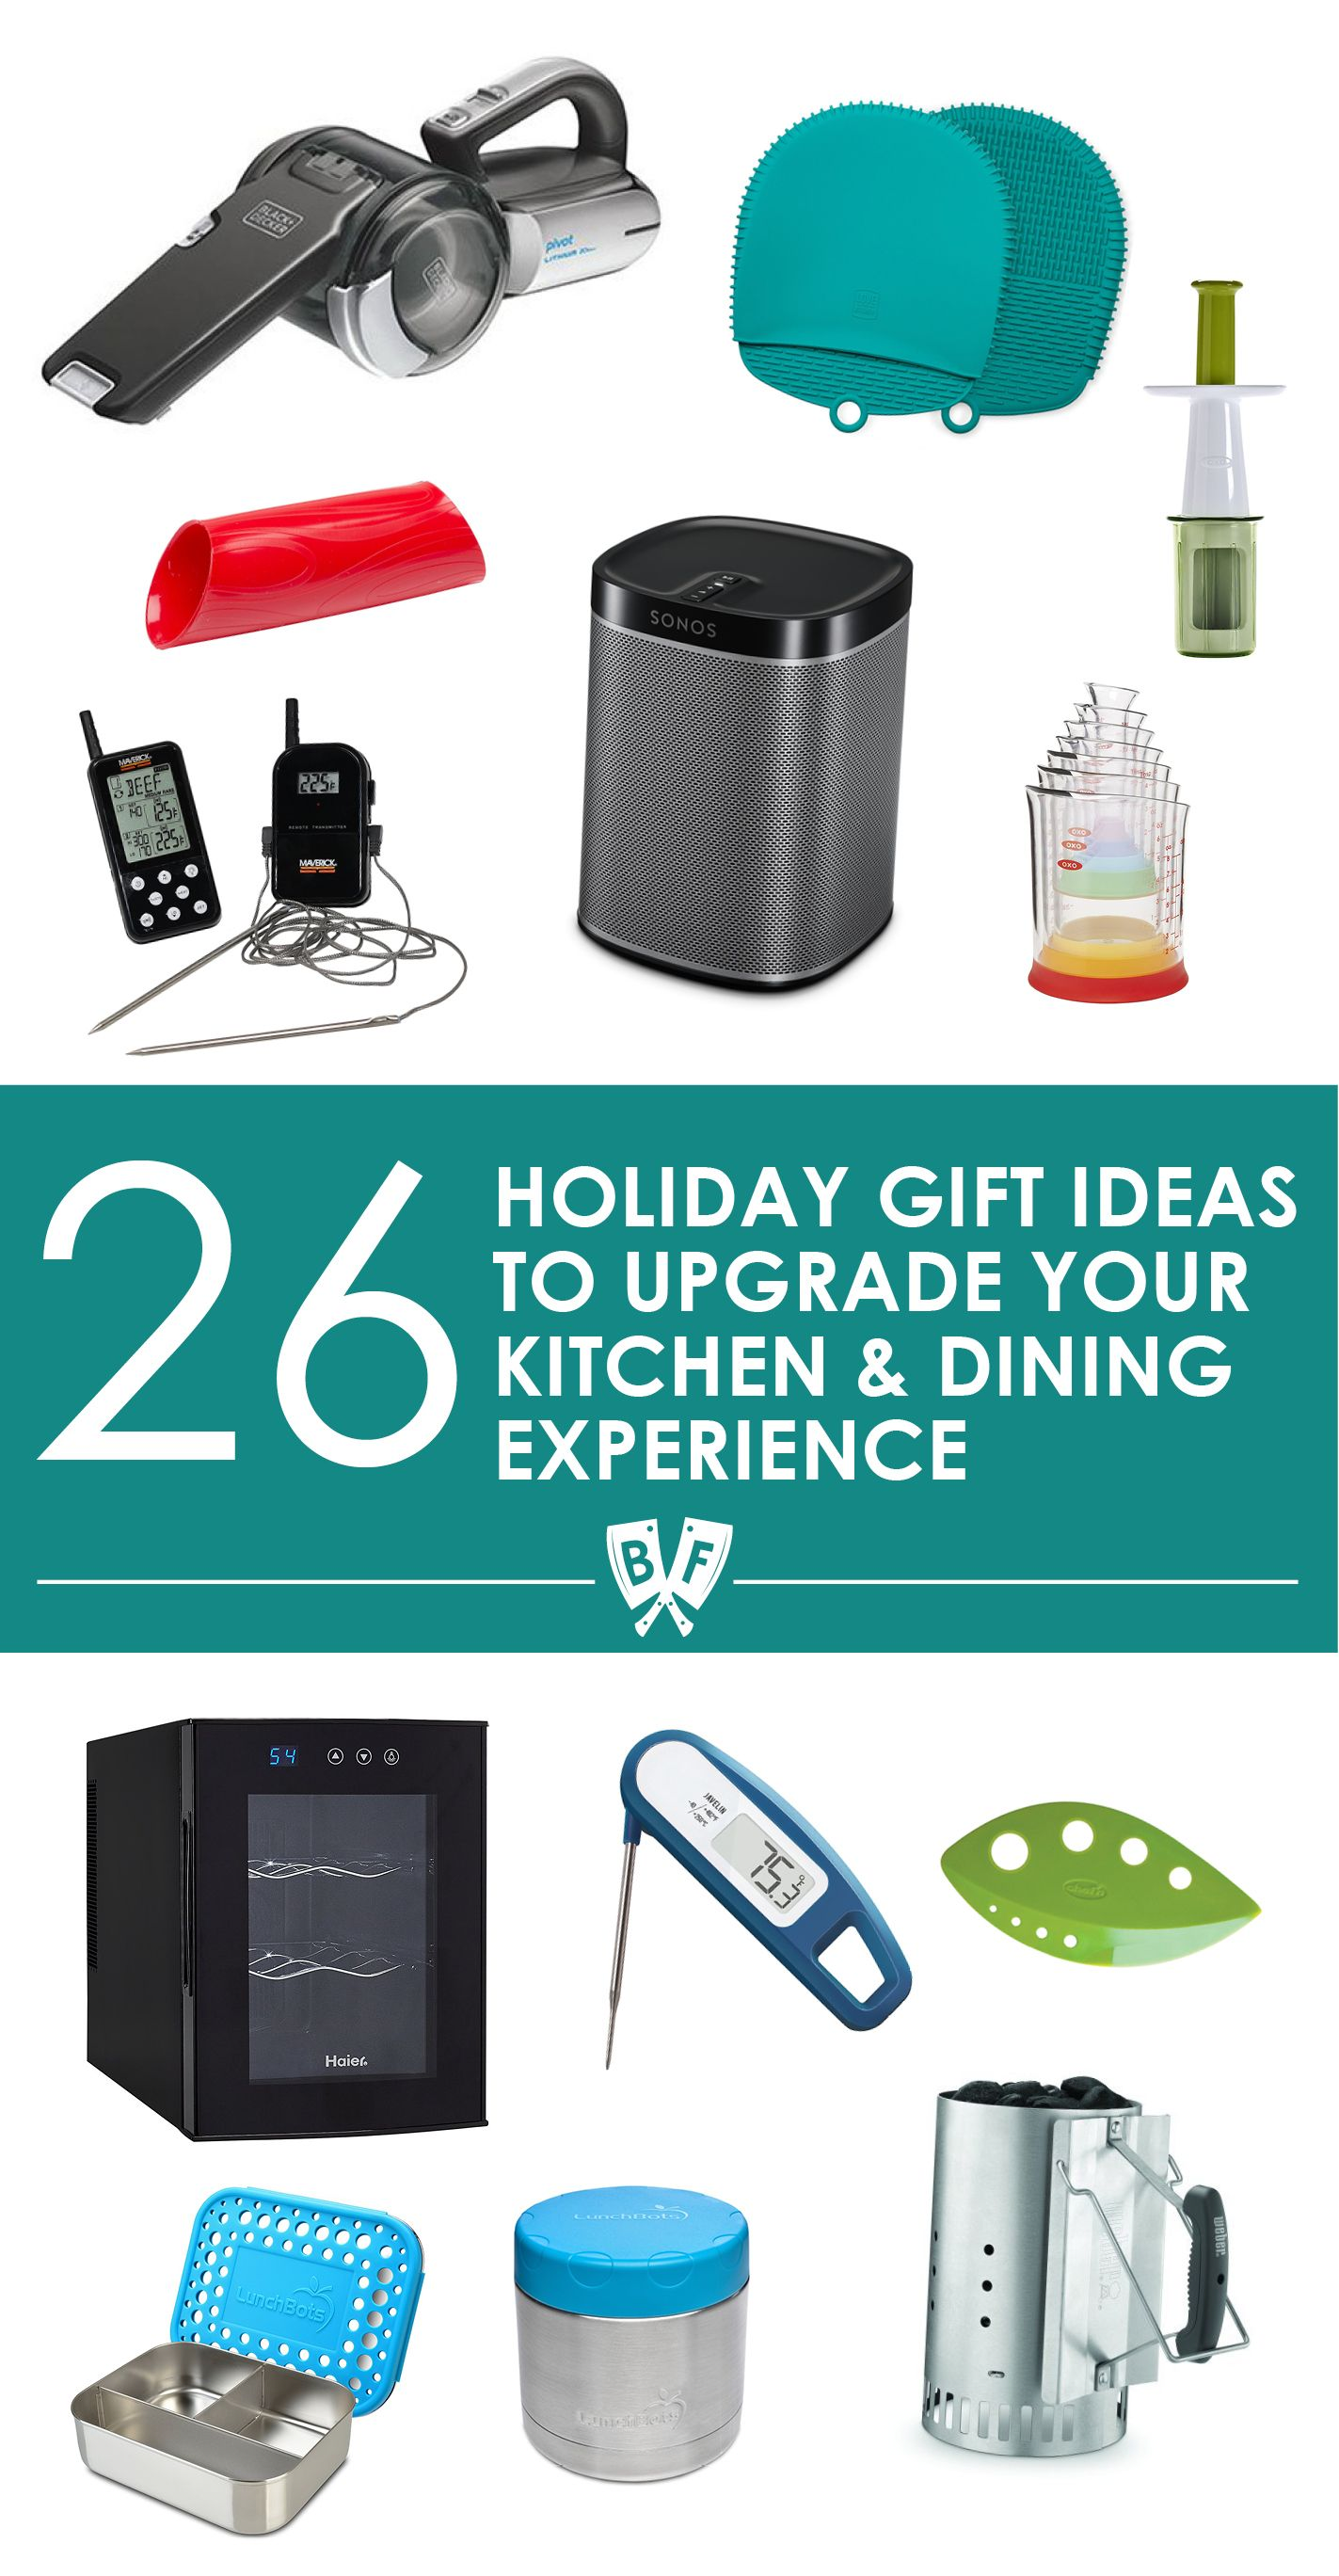 Holiday Gift Ideas to Upgrade Your Kitchen & Dining Experience ...